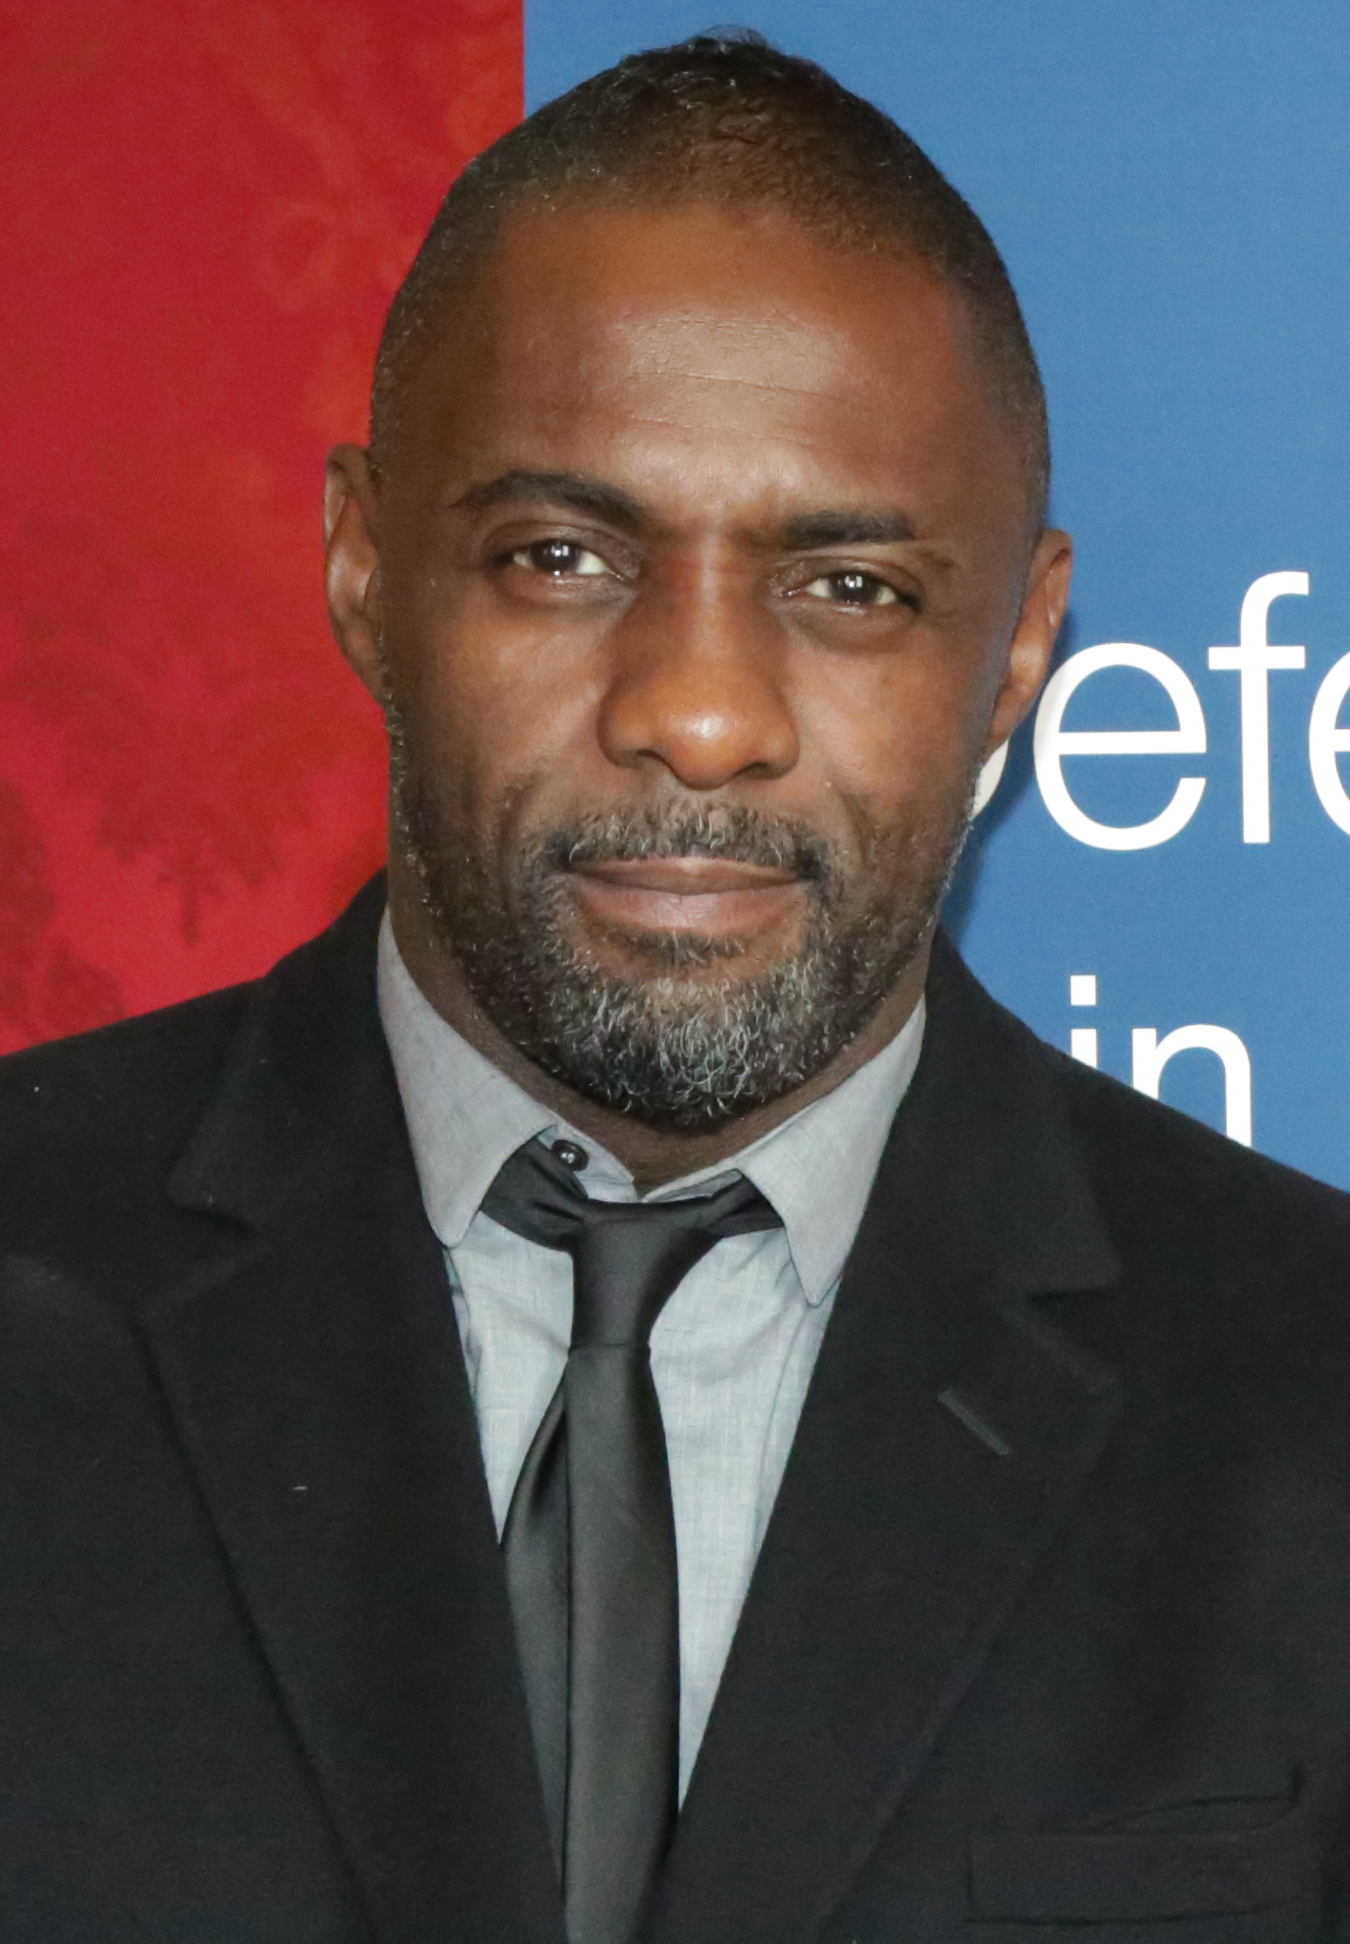 Idris Elba earned a  million dollar salary, leaving the net worth at 12 million in 2017